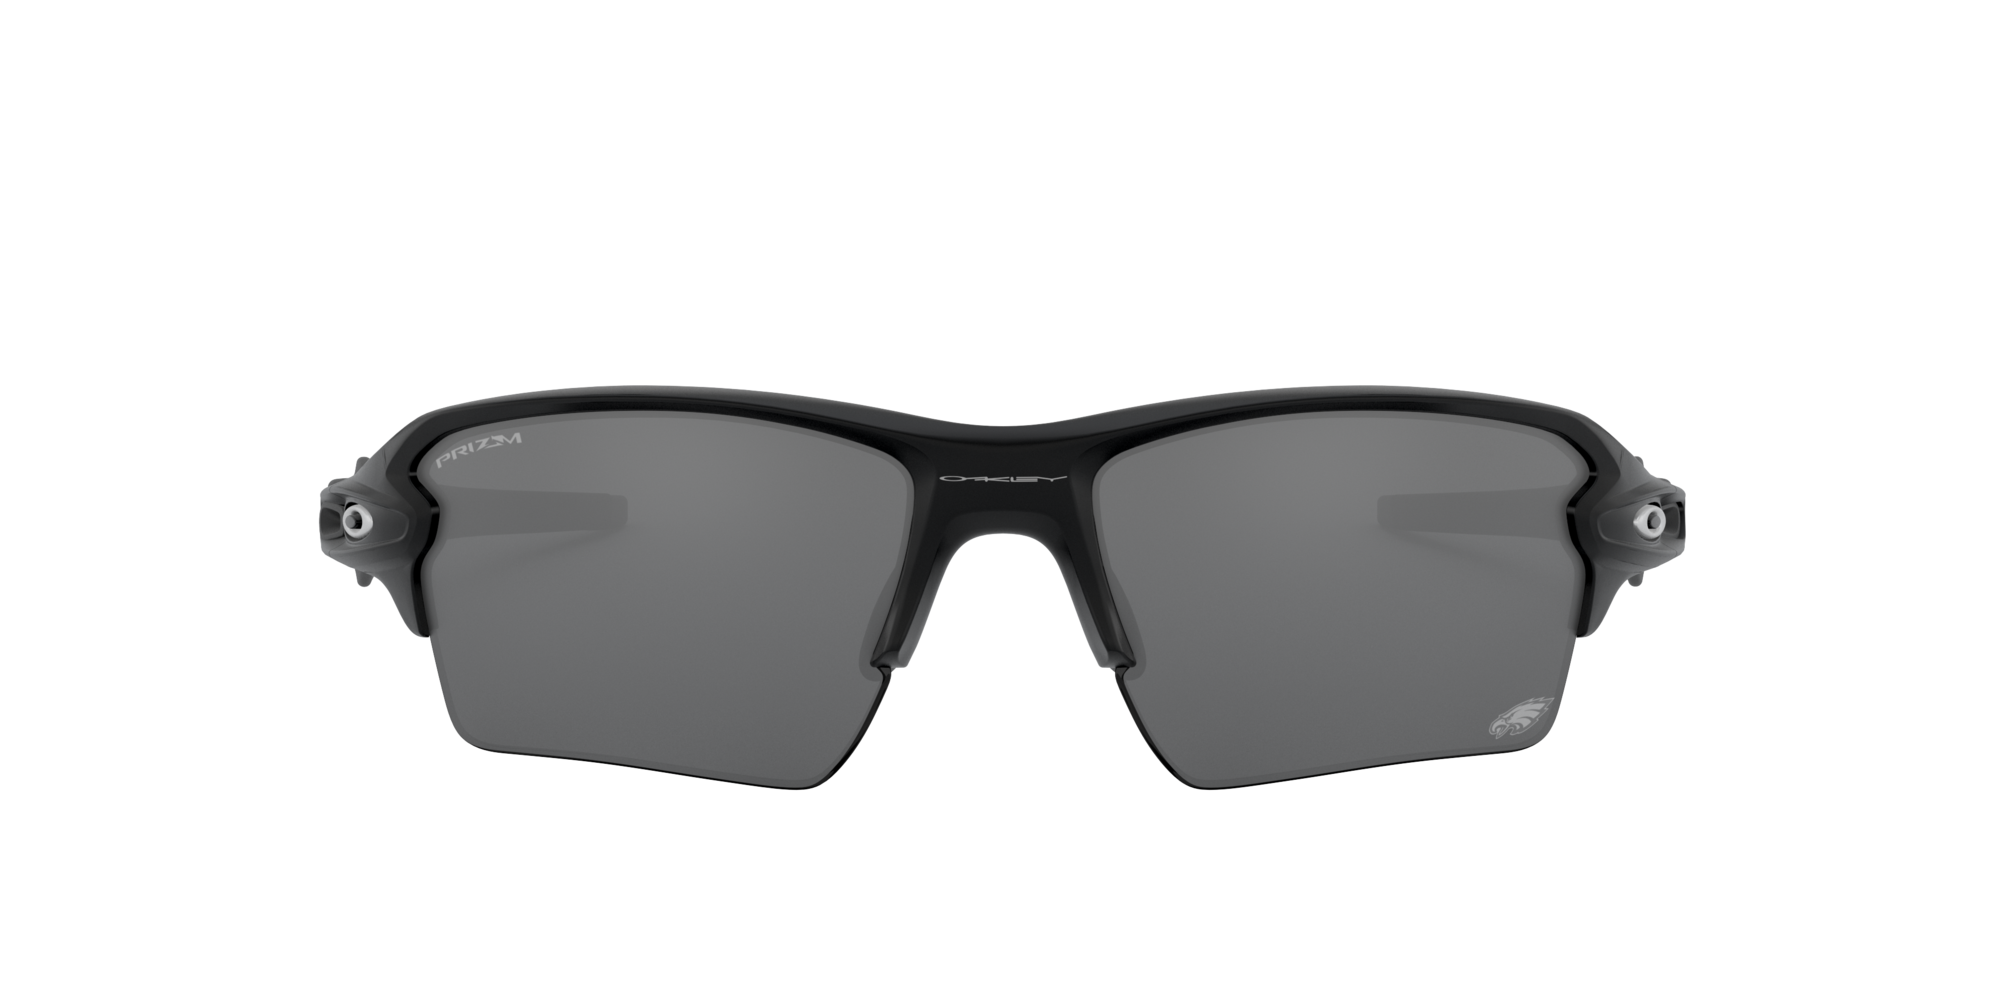 Image for OO9188 59 FLAK 2.0 XL from LensCrafters   Glasses, Prescription Glasses Online, Eyewear